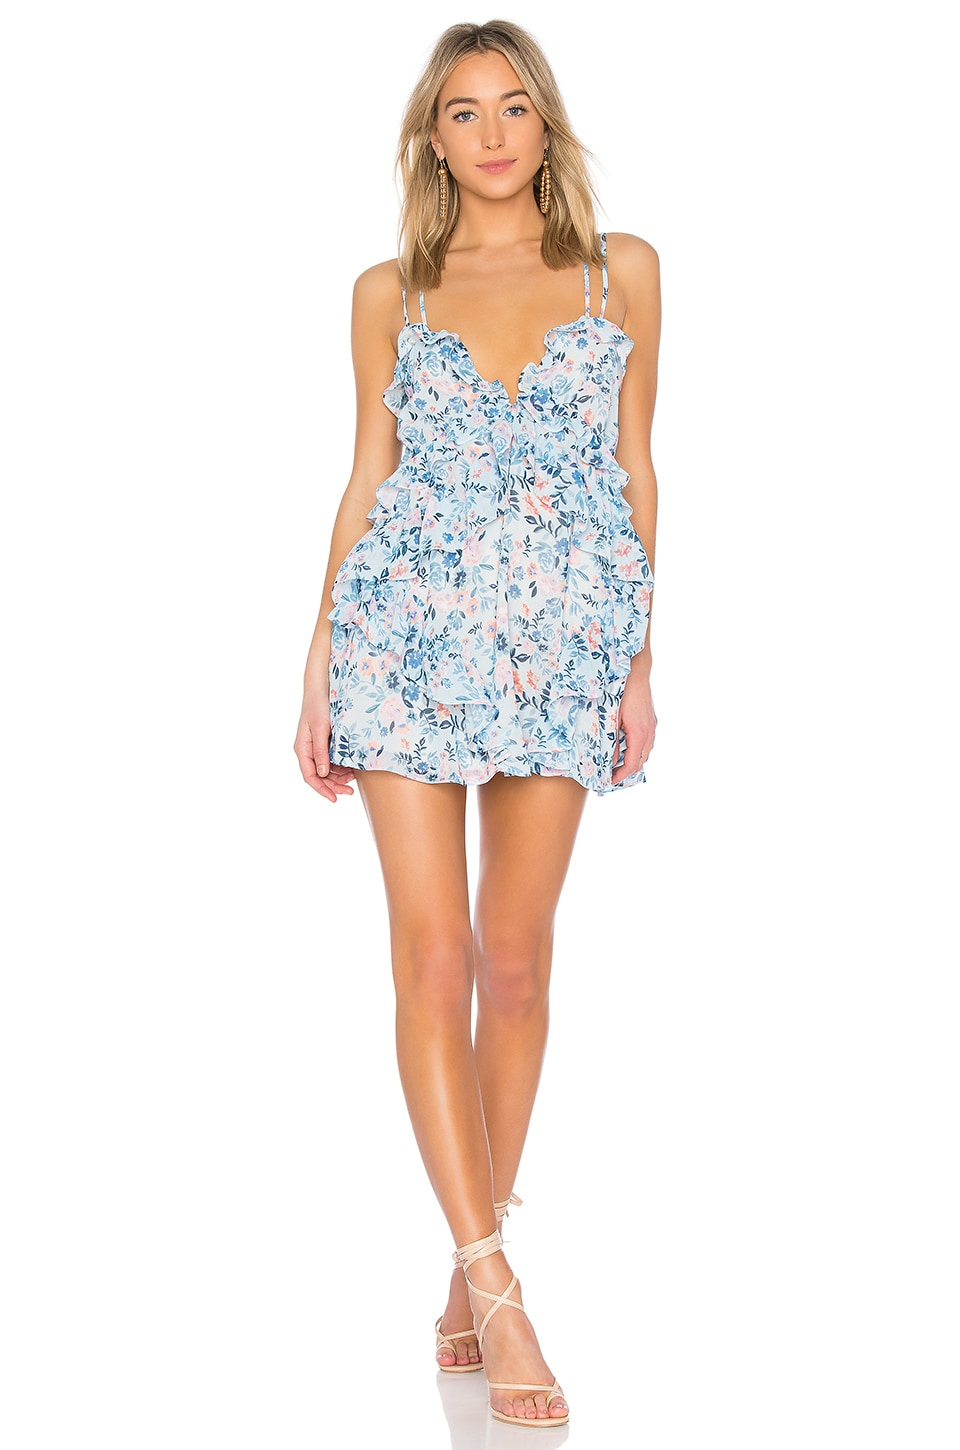 Lovers + Friends Rae Dress in Meadow Floral